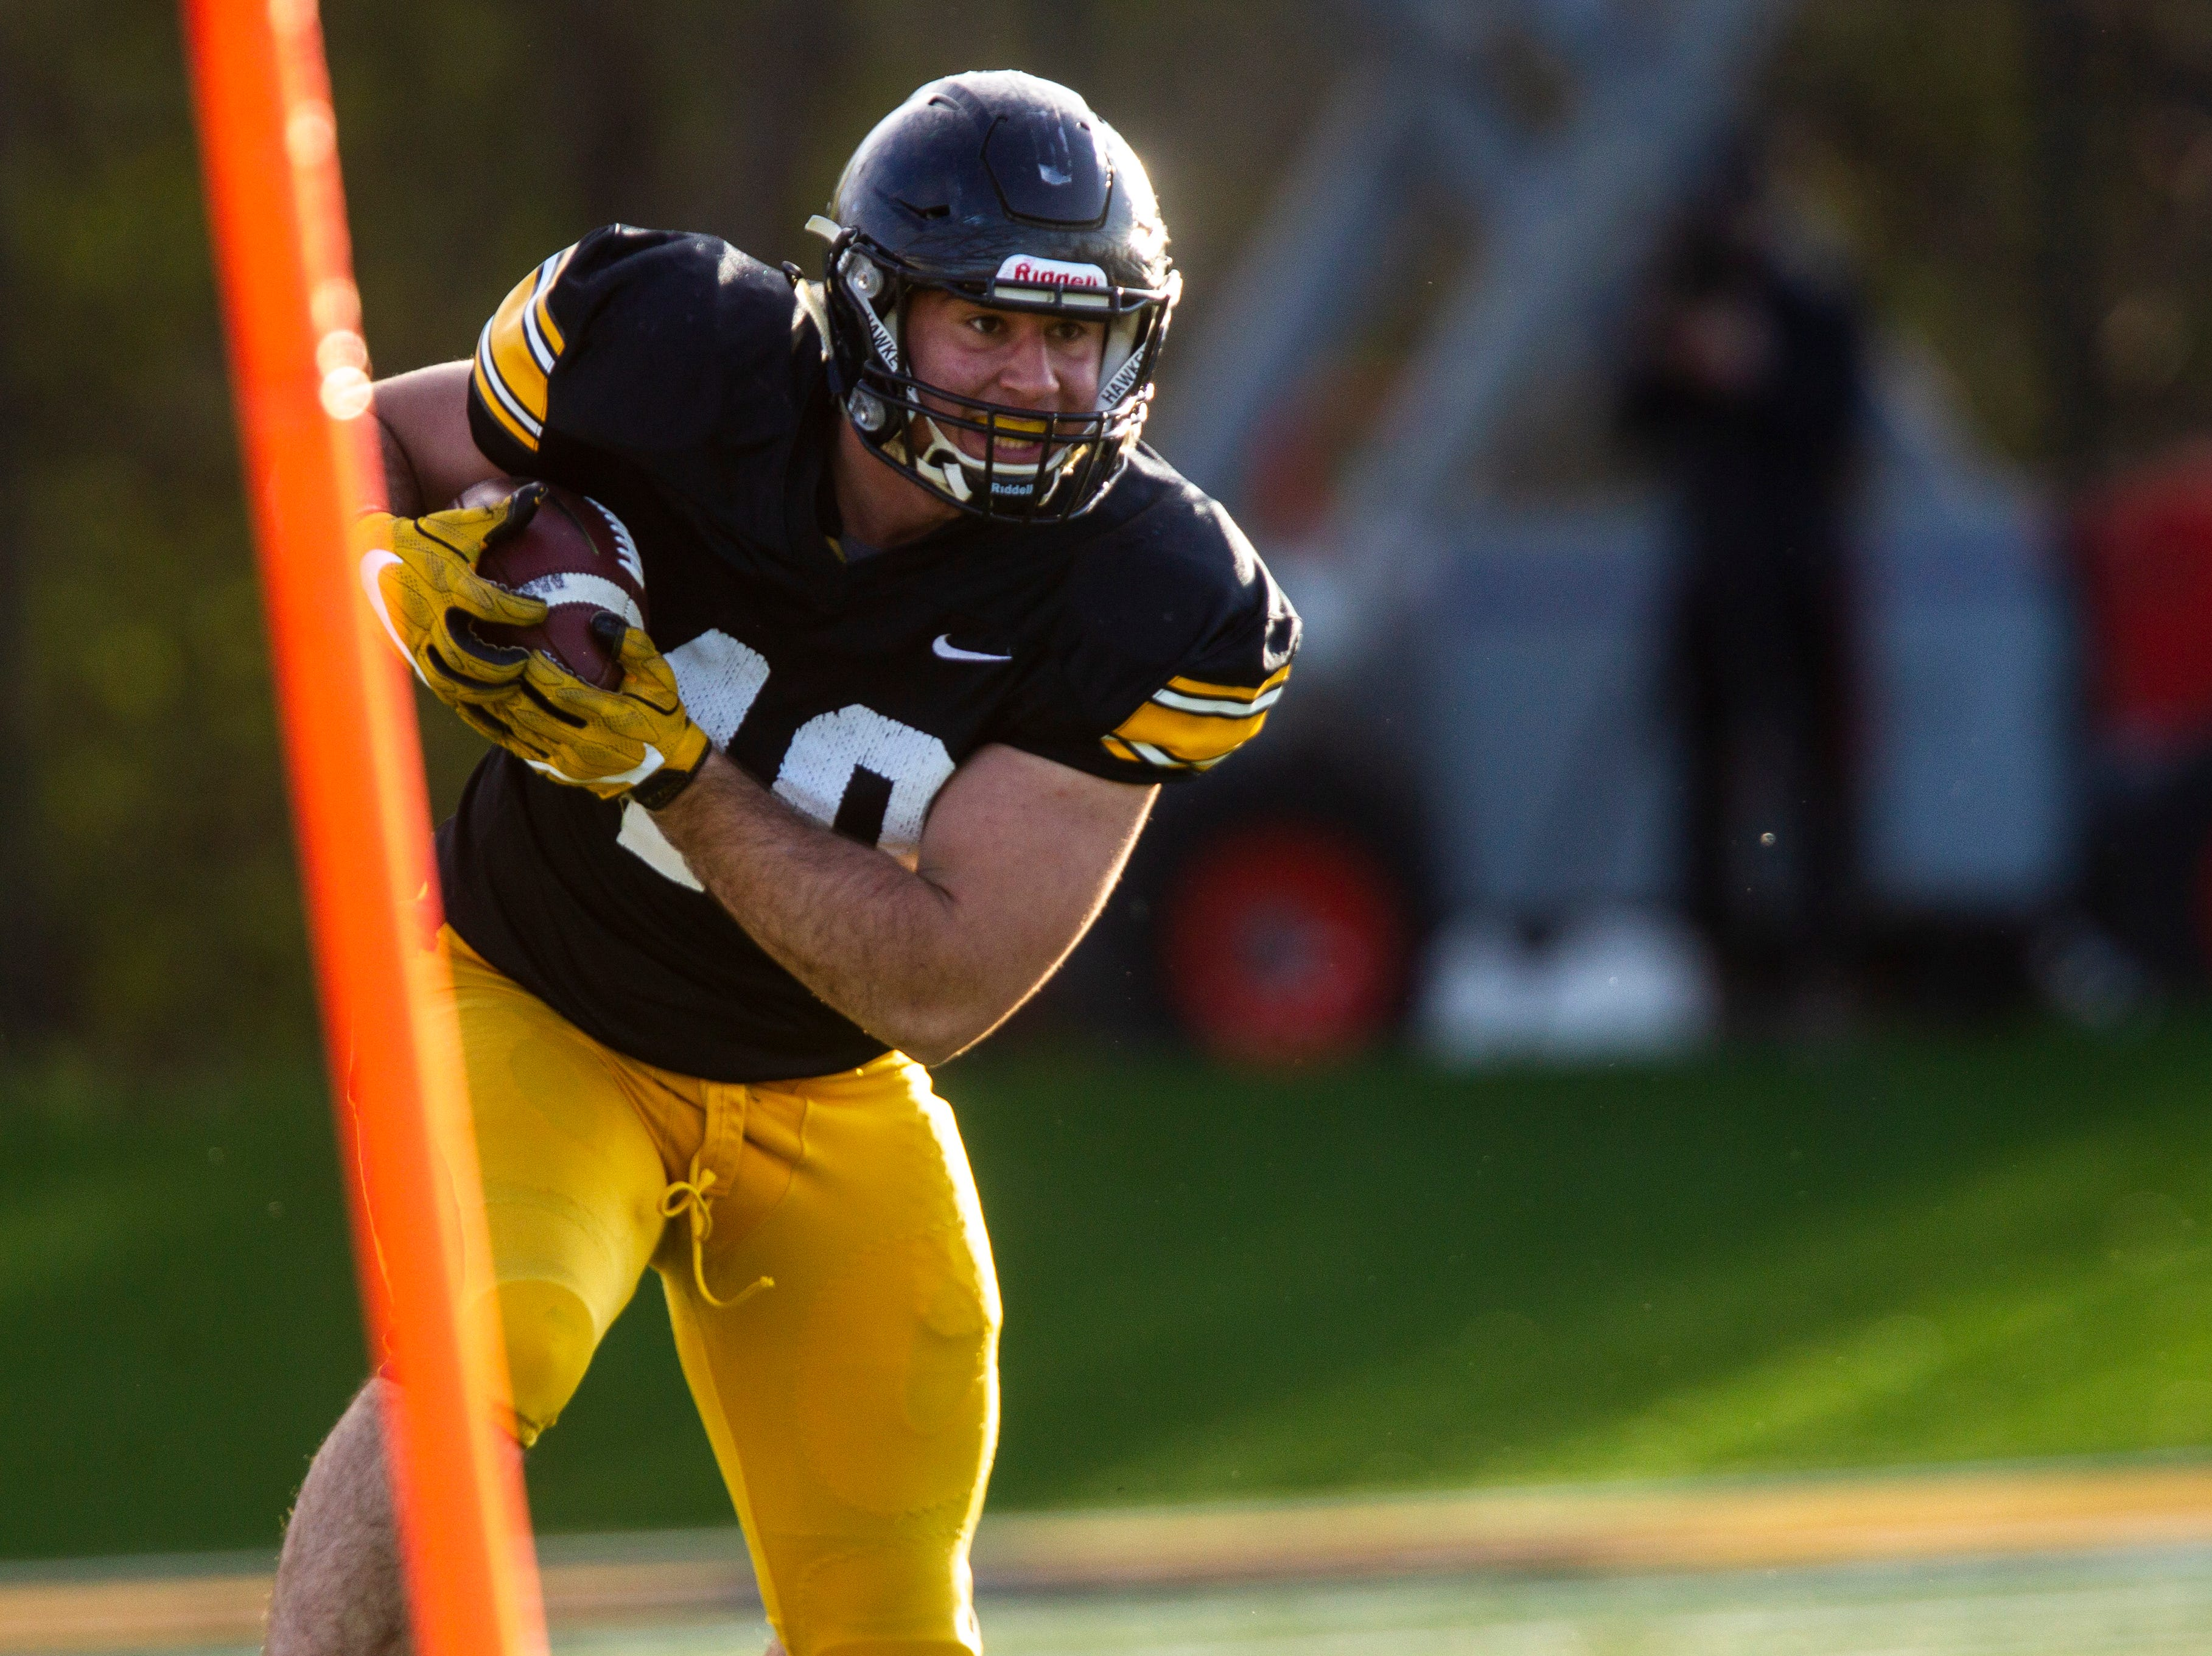 Iowa fullback Turner Pallissard (40) runs up the sideline during the final spring football practice, Friday, April 26, 2019, at the University of Iowa outdoor practice facility in Iowa City, Iowa.